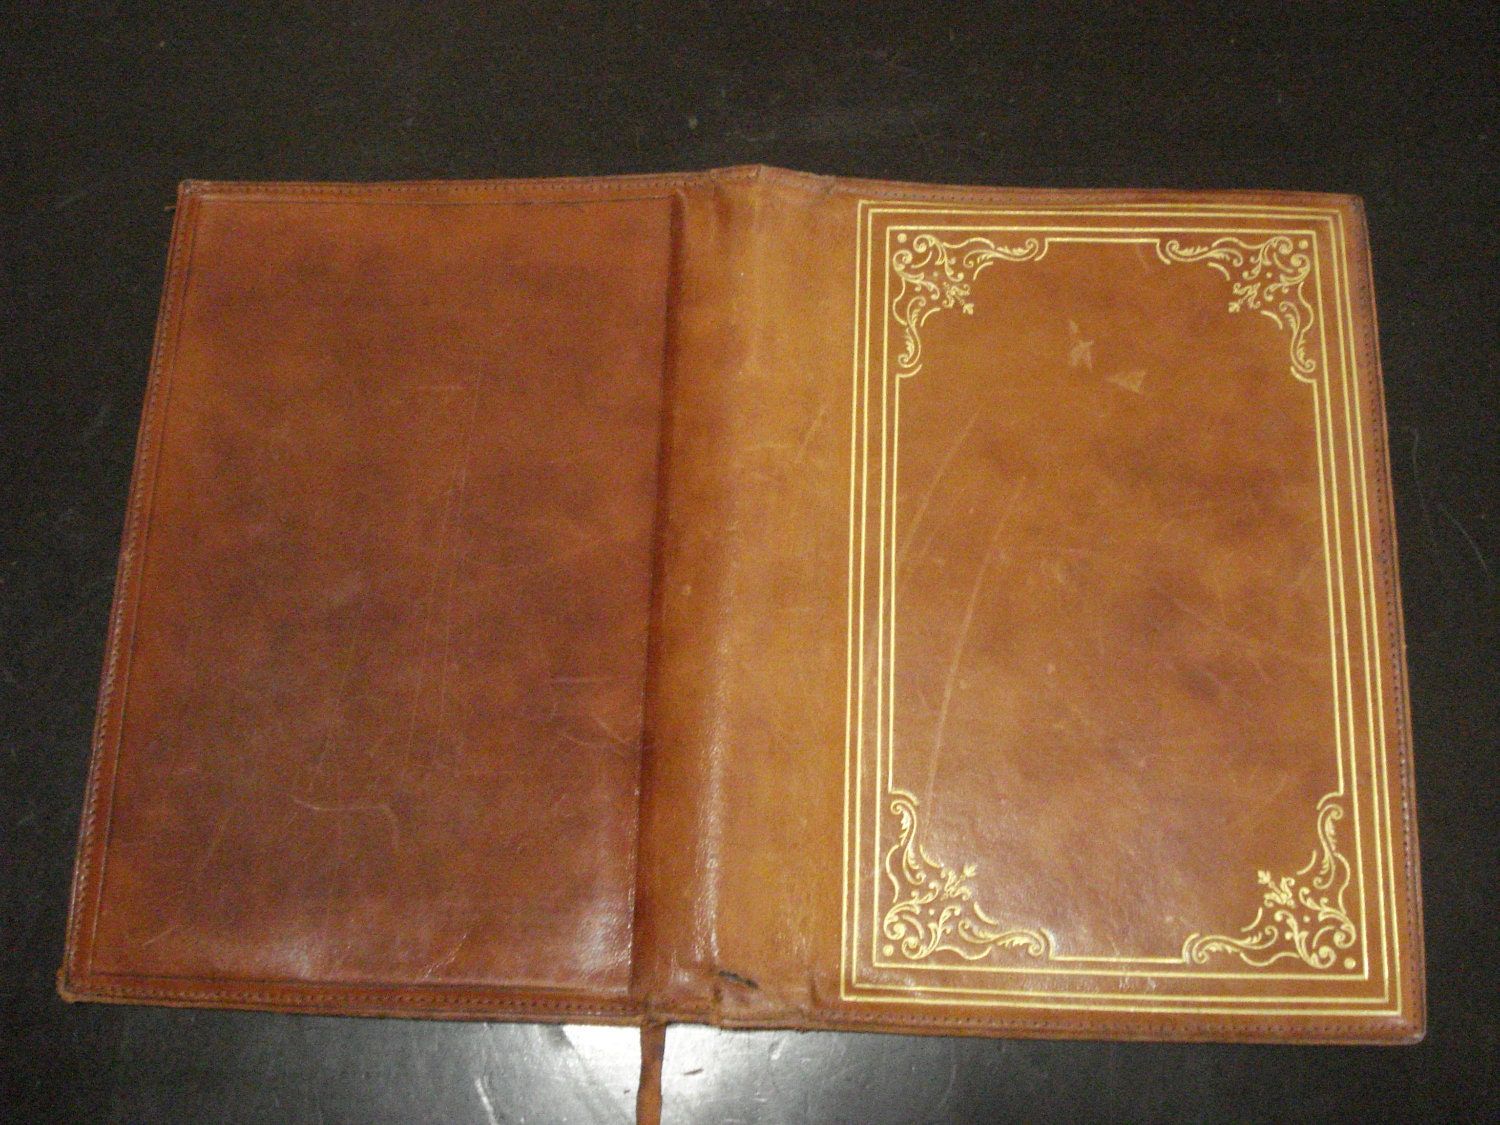 Vintage Leather Book Cover : Vintage leather book cover leonards florence italy